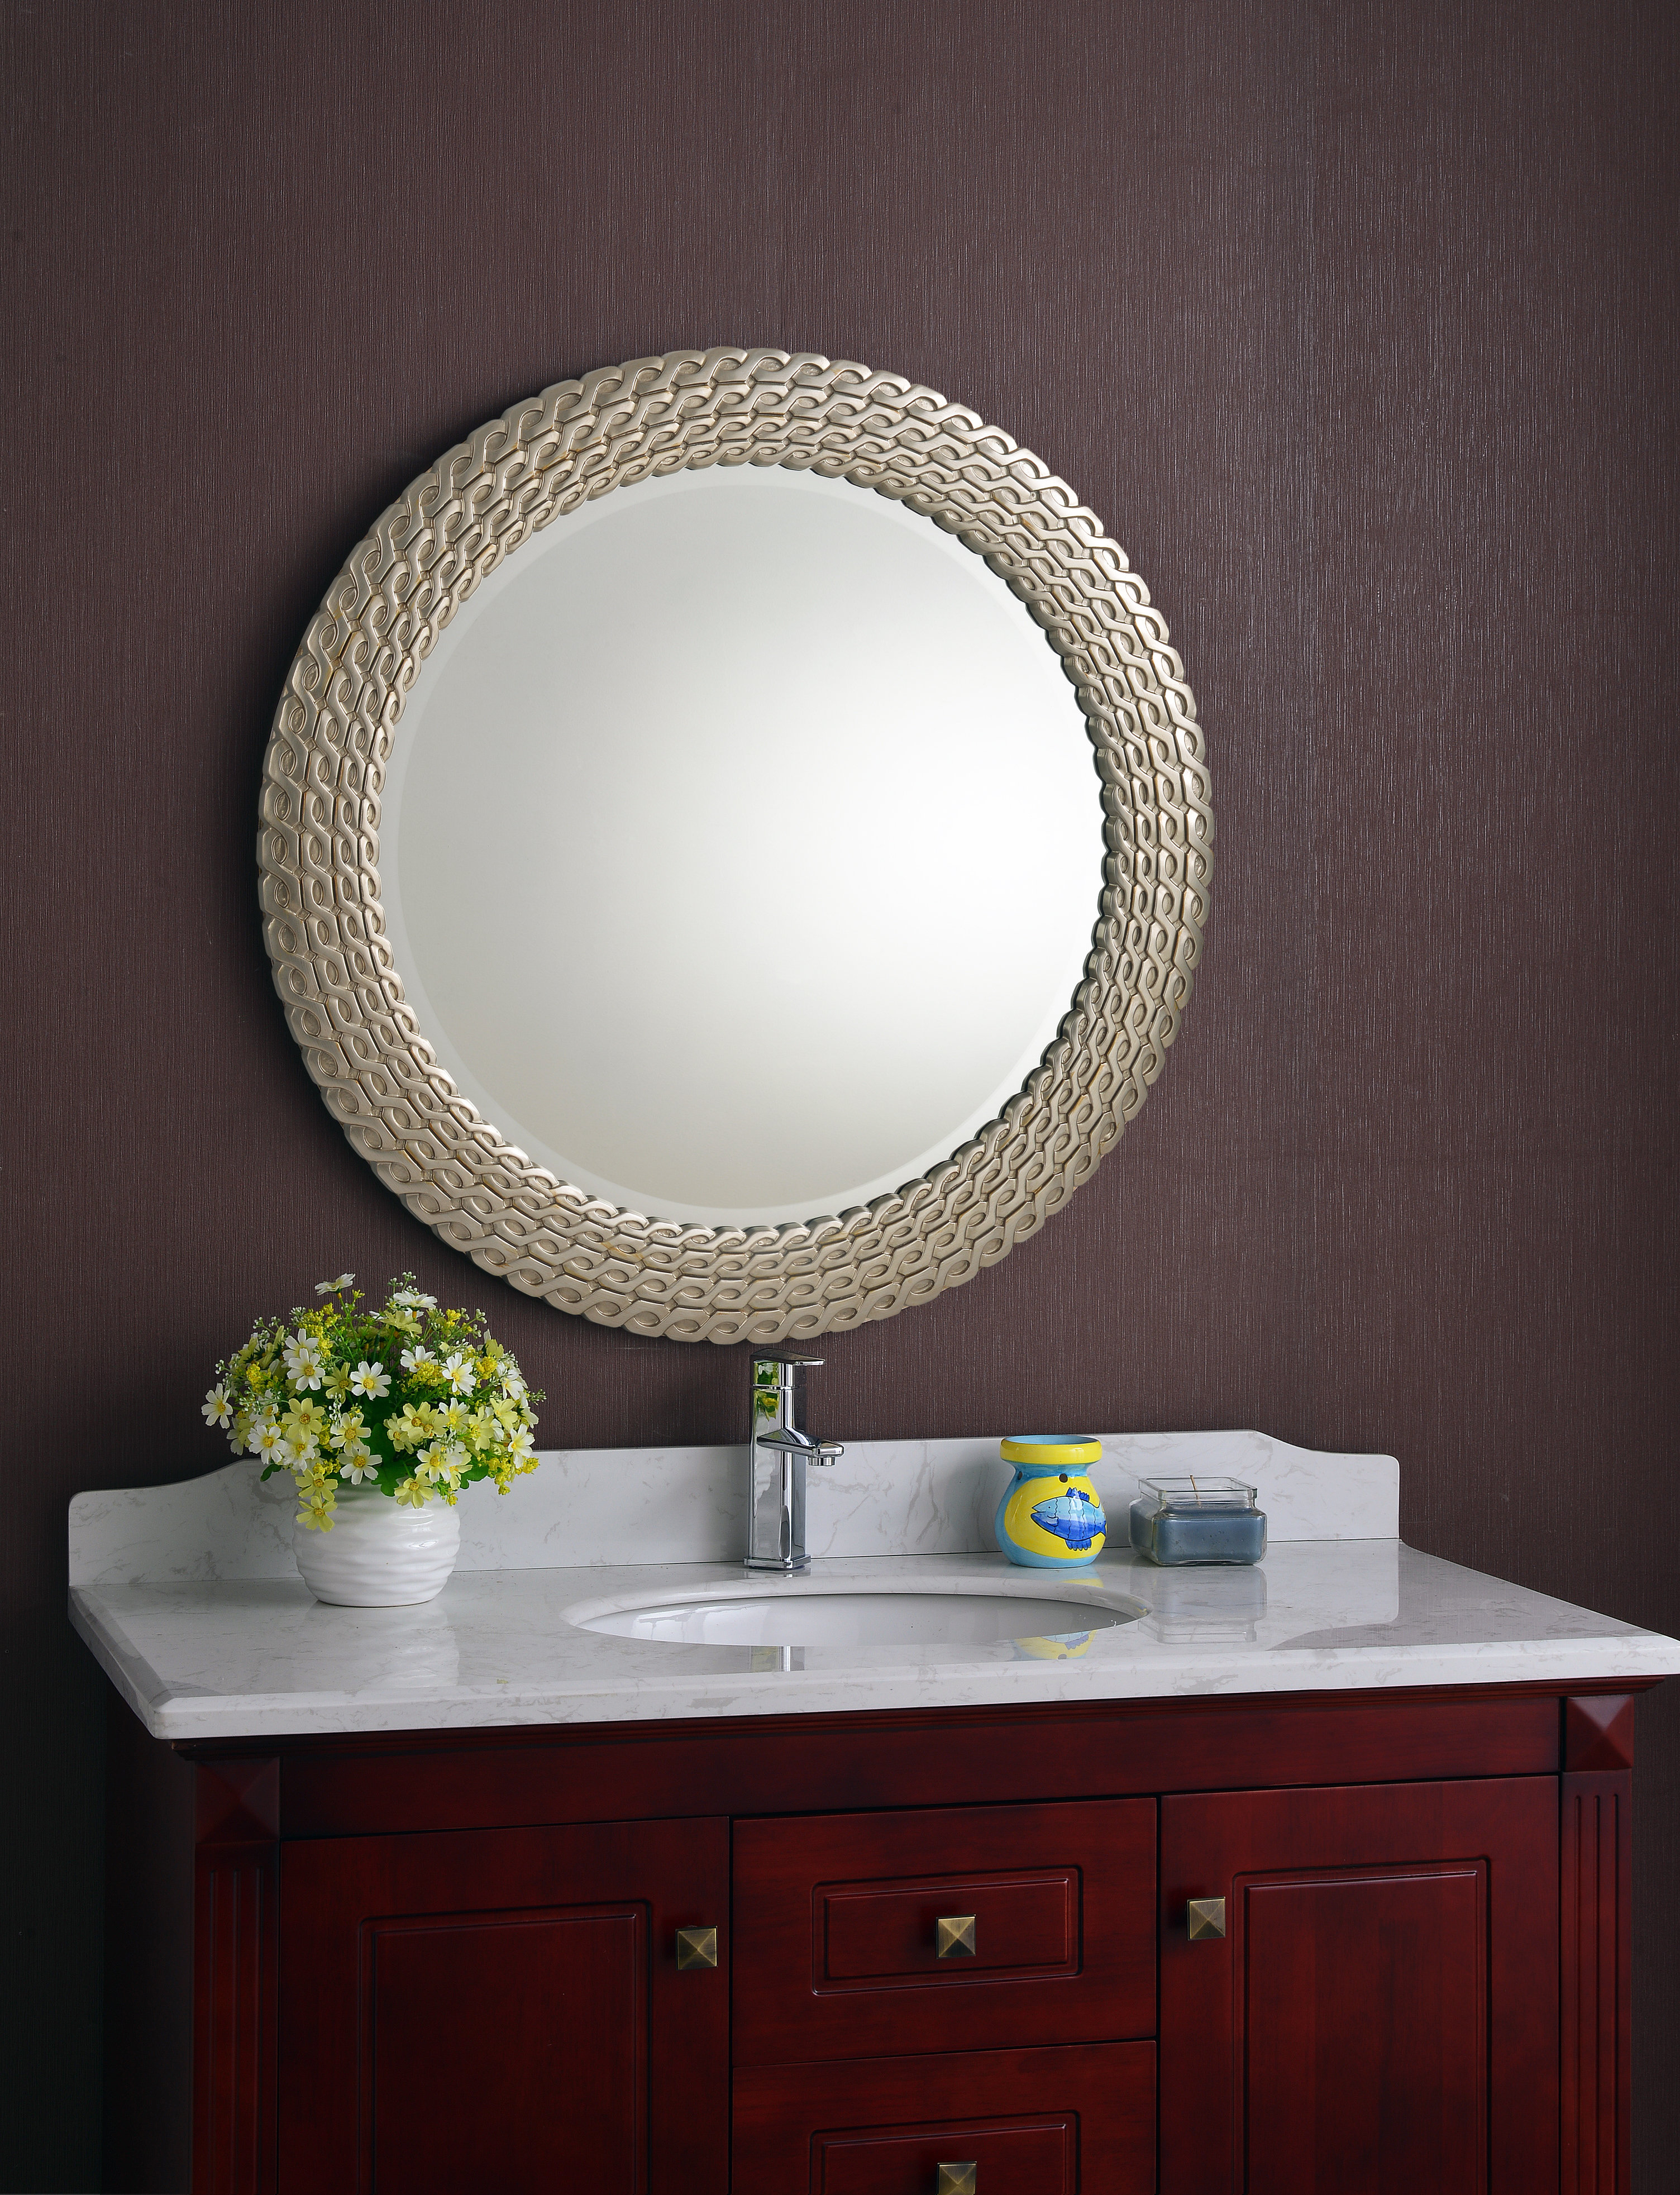 Bracelet Traditional Accent Mirrors Pertaining To Favorite Bracelet Traditional Accent Mirror (View 3 of 20)